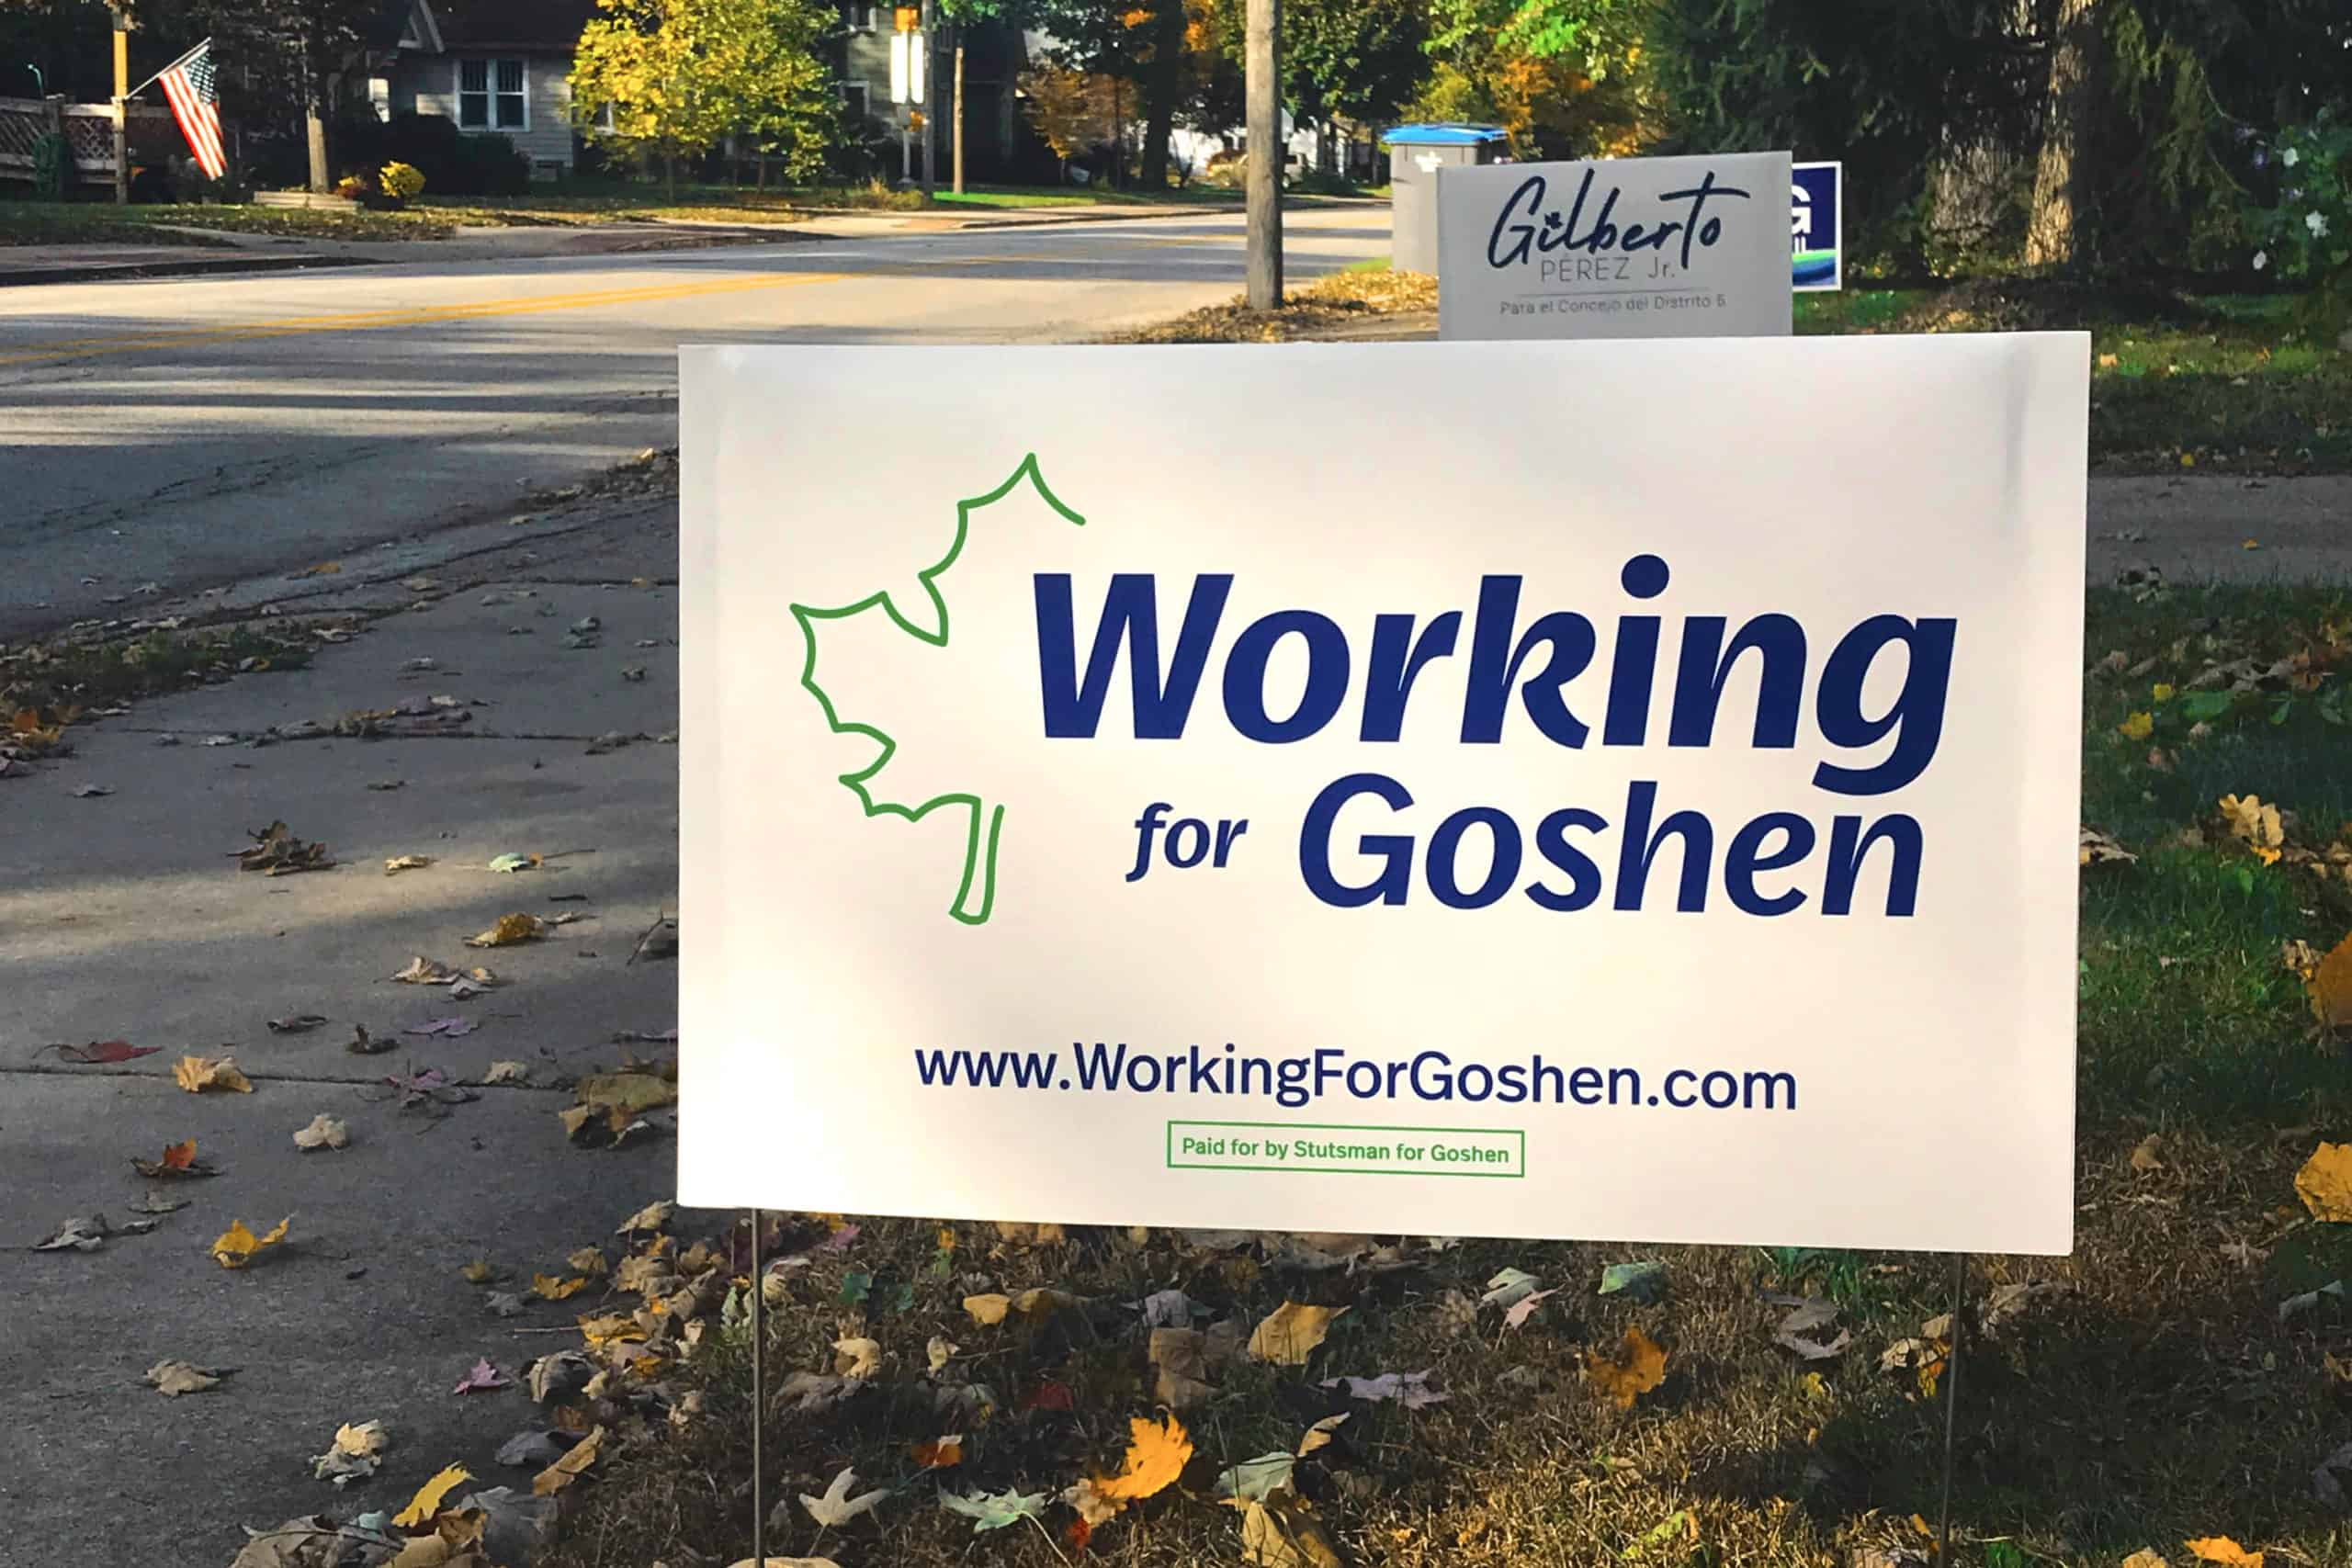 Working For Goshen Yard Sign